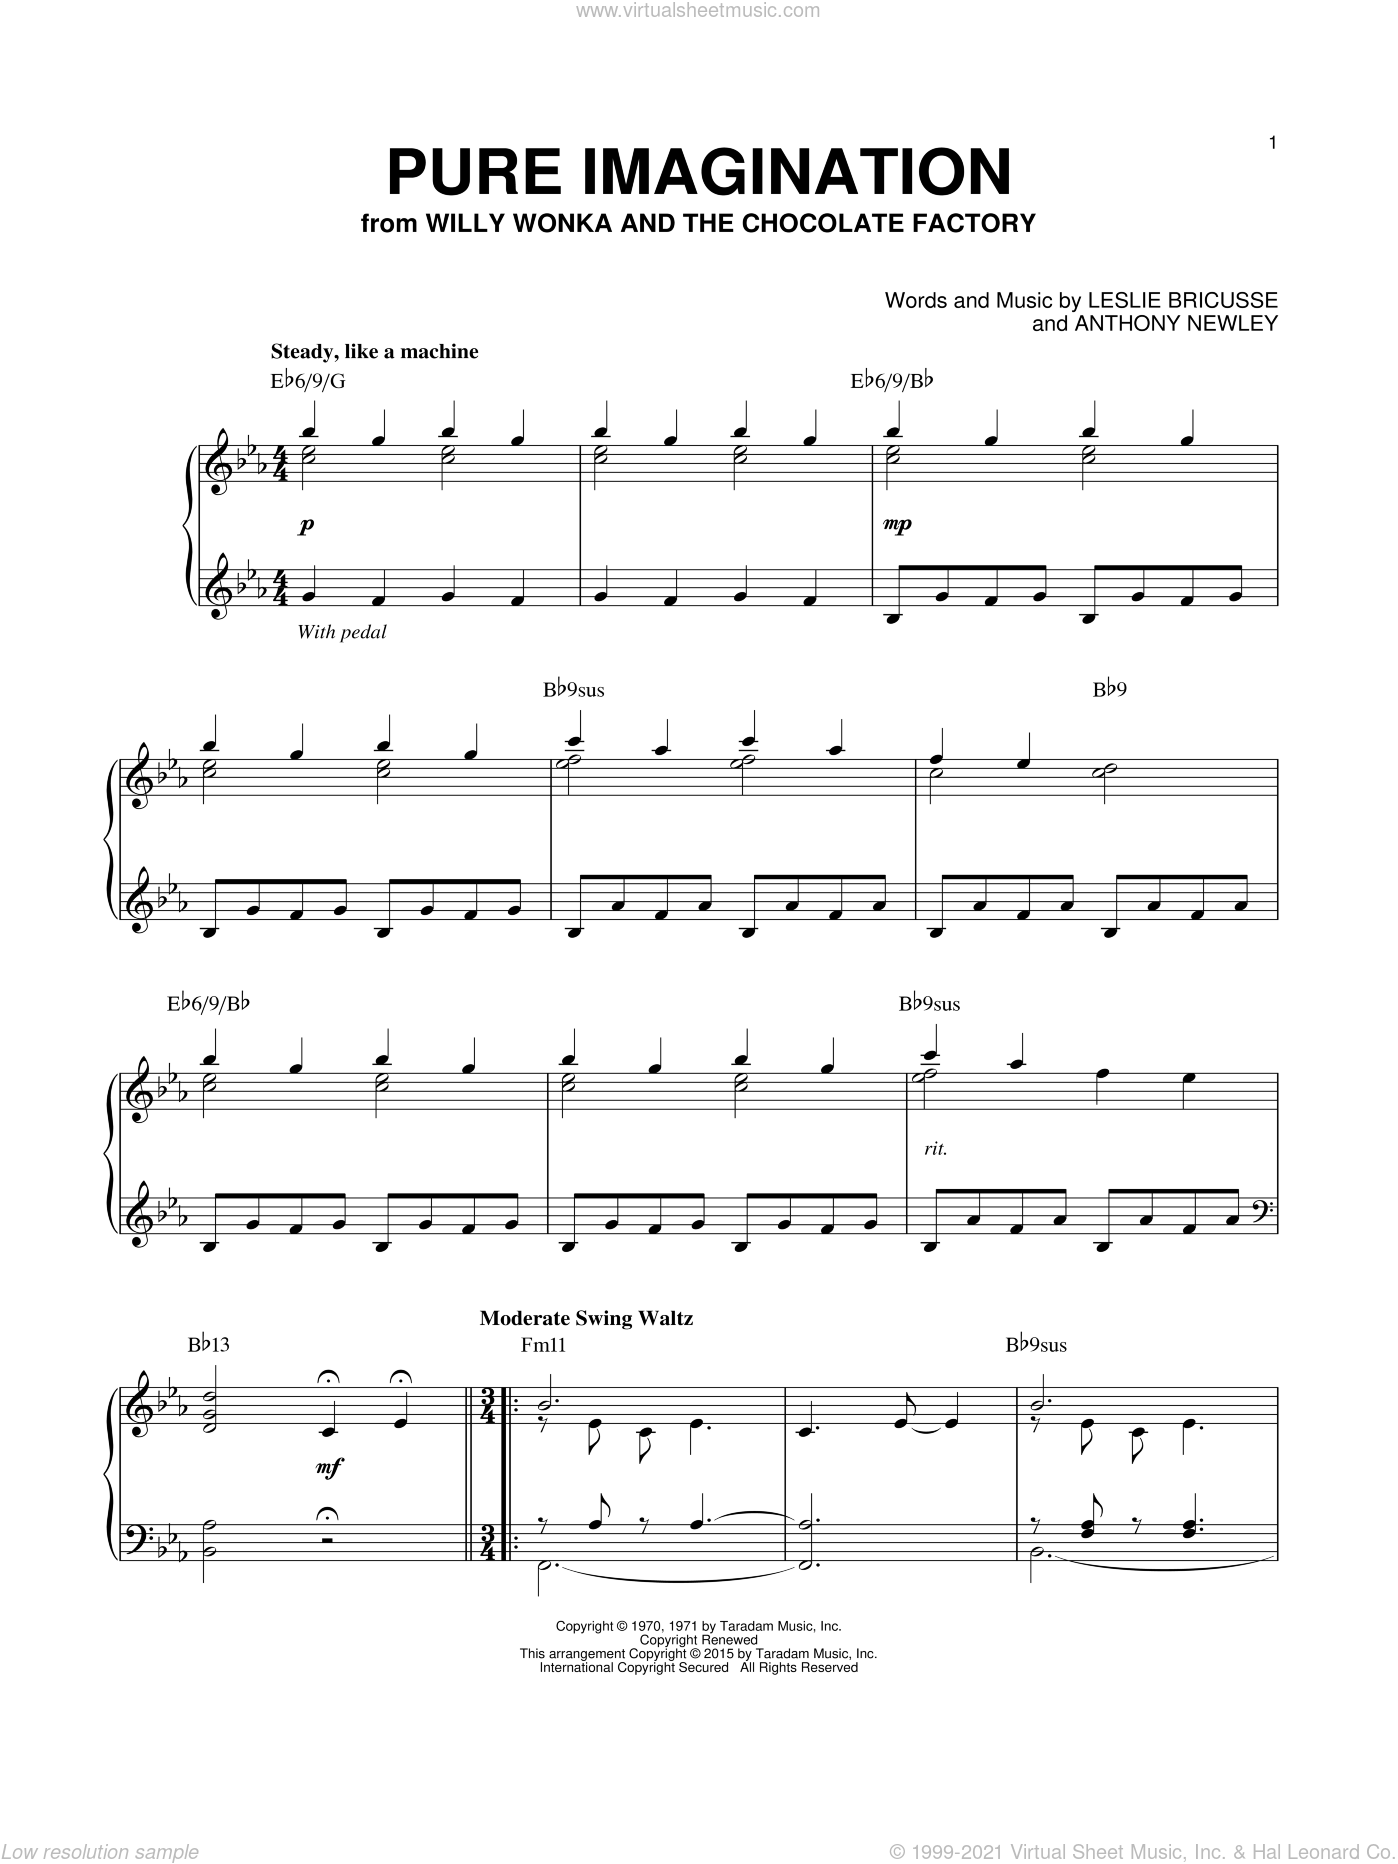 Pure Imagination sheet music for piano solo by Willy Wonka & the Chocolate Factory, Anthony Newley and Leslie Bricusse, intermediate skill level